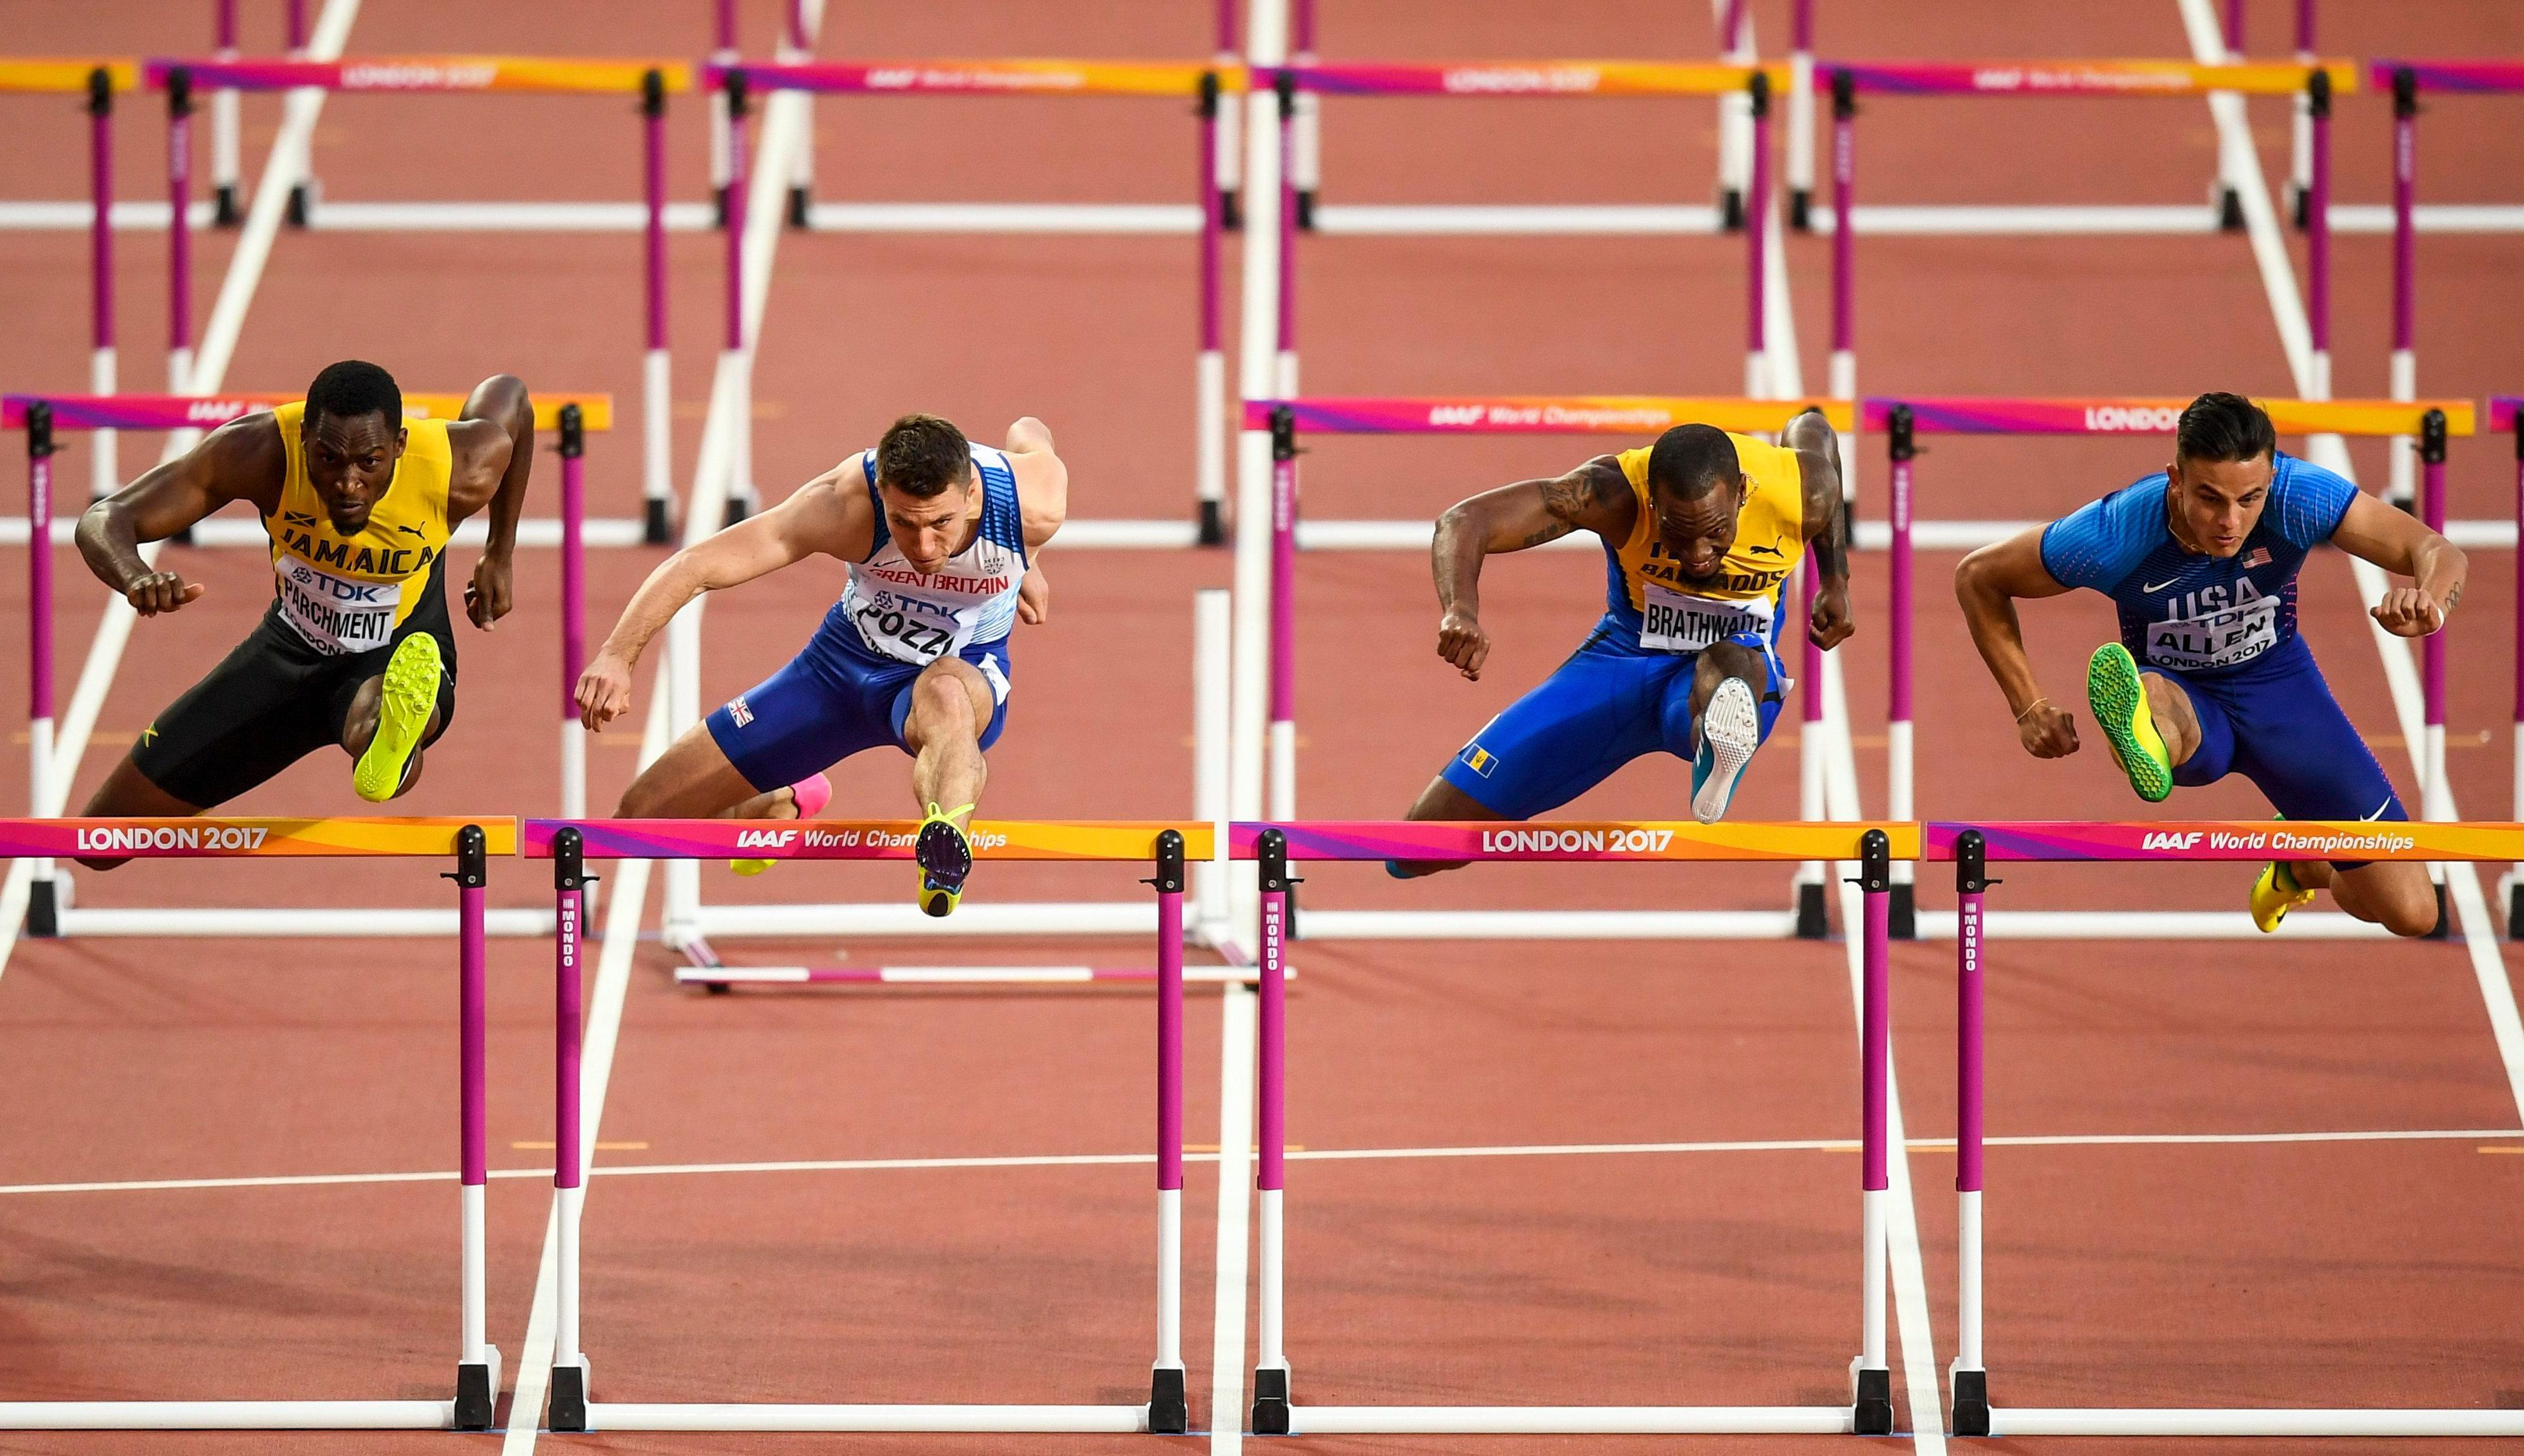 Pozzi sent the penultimate hurdle crashing to the floor to cost him vital speed